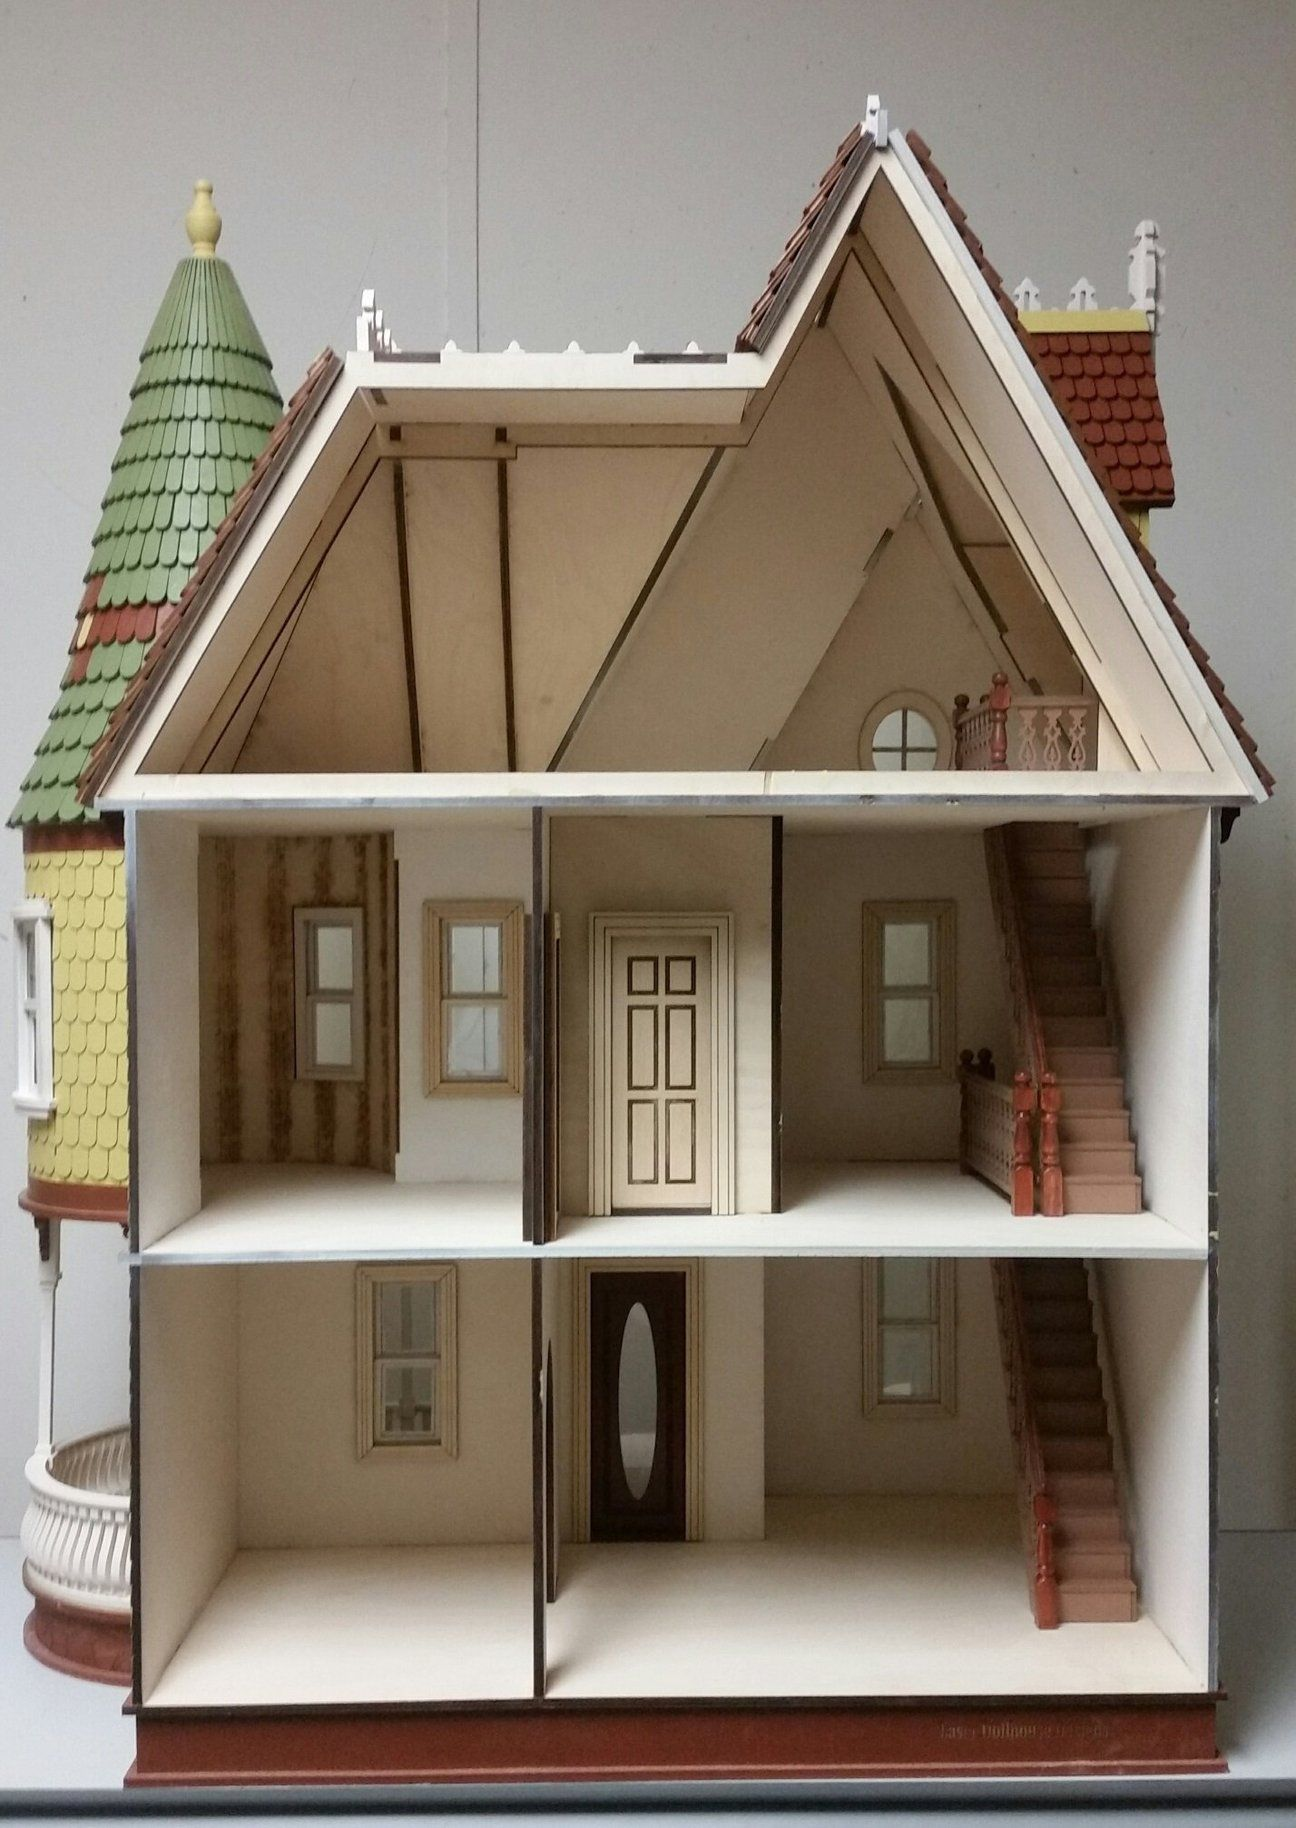 Wooden Dollhouse Kit Mirabella Mansion 1 12 Scale Victorian Dollhouse Wooden Dollhouse Kits Dollhouse Kits